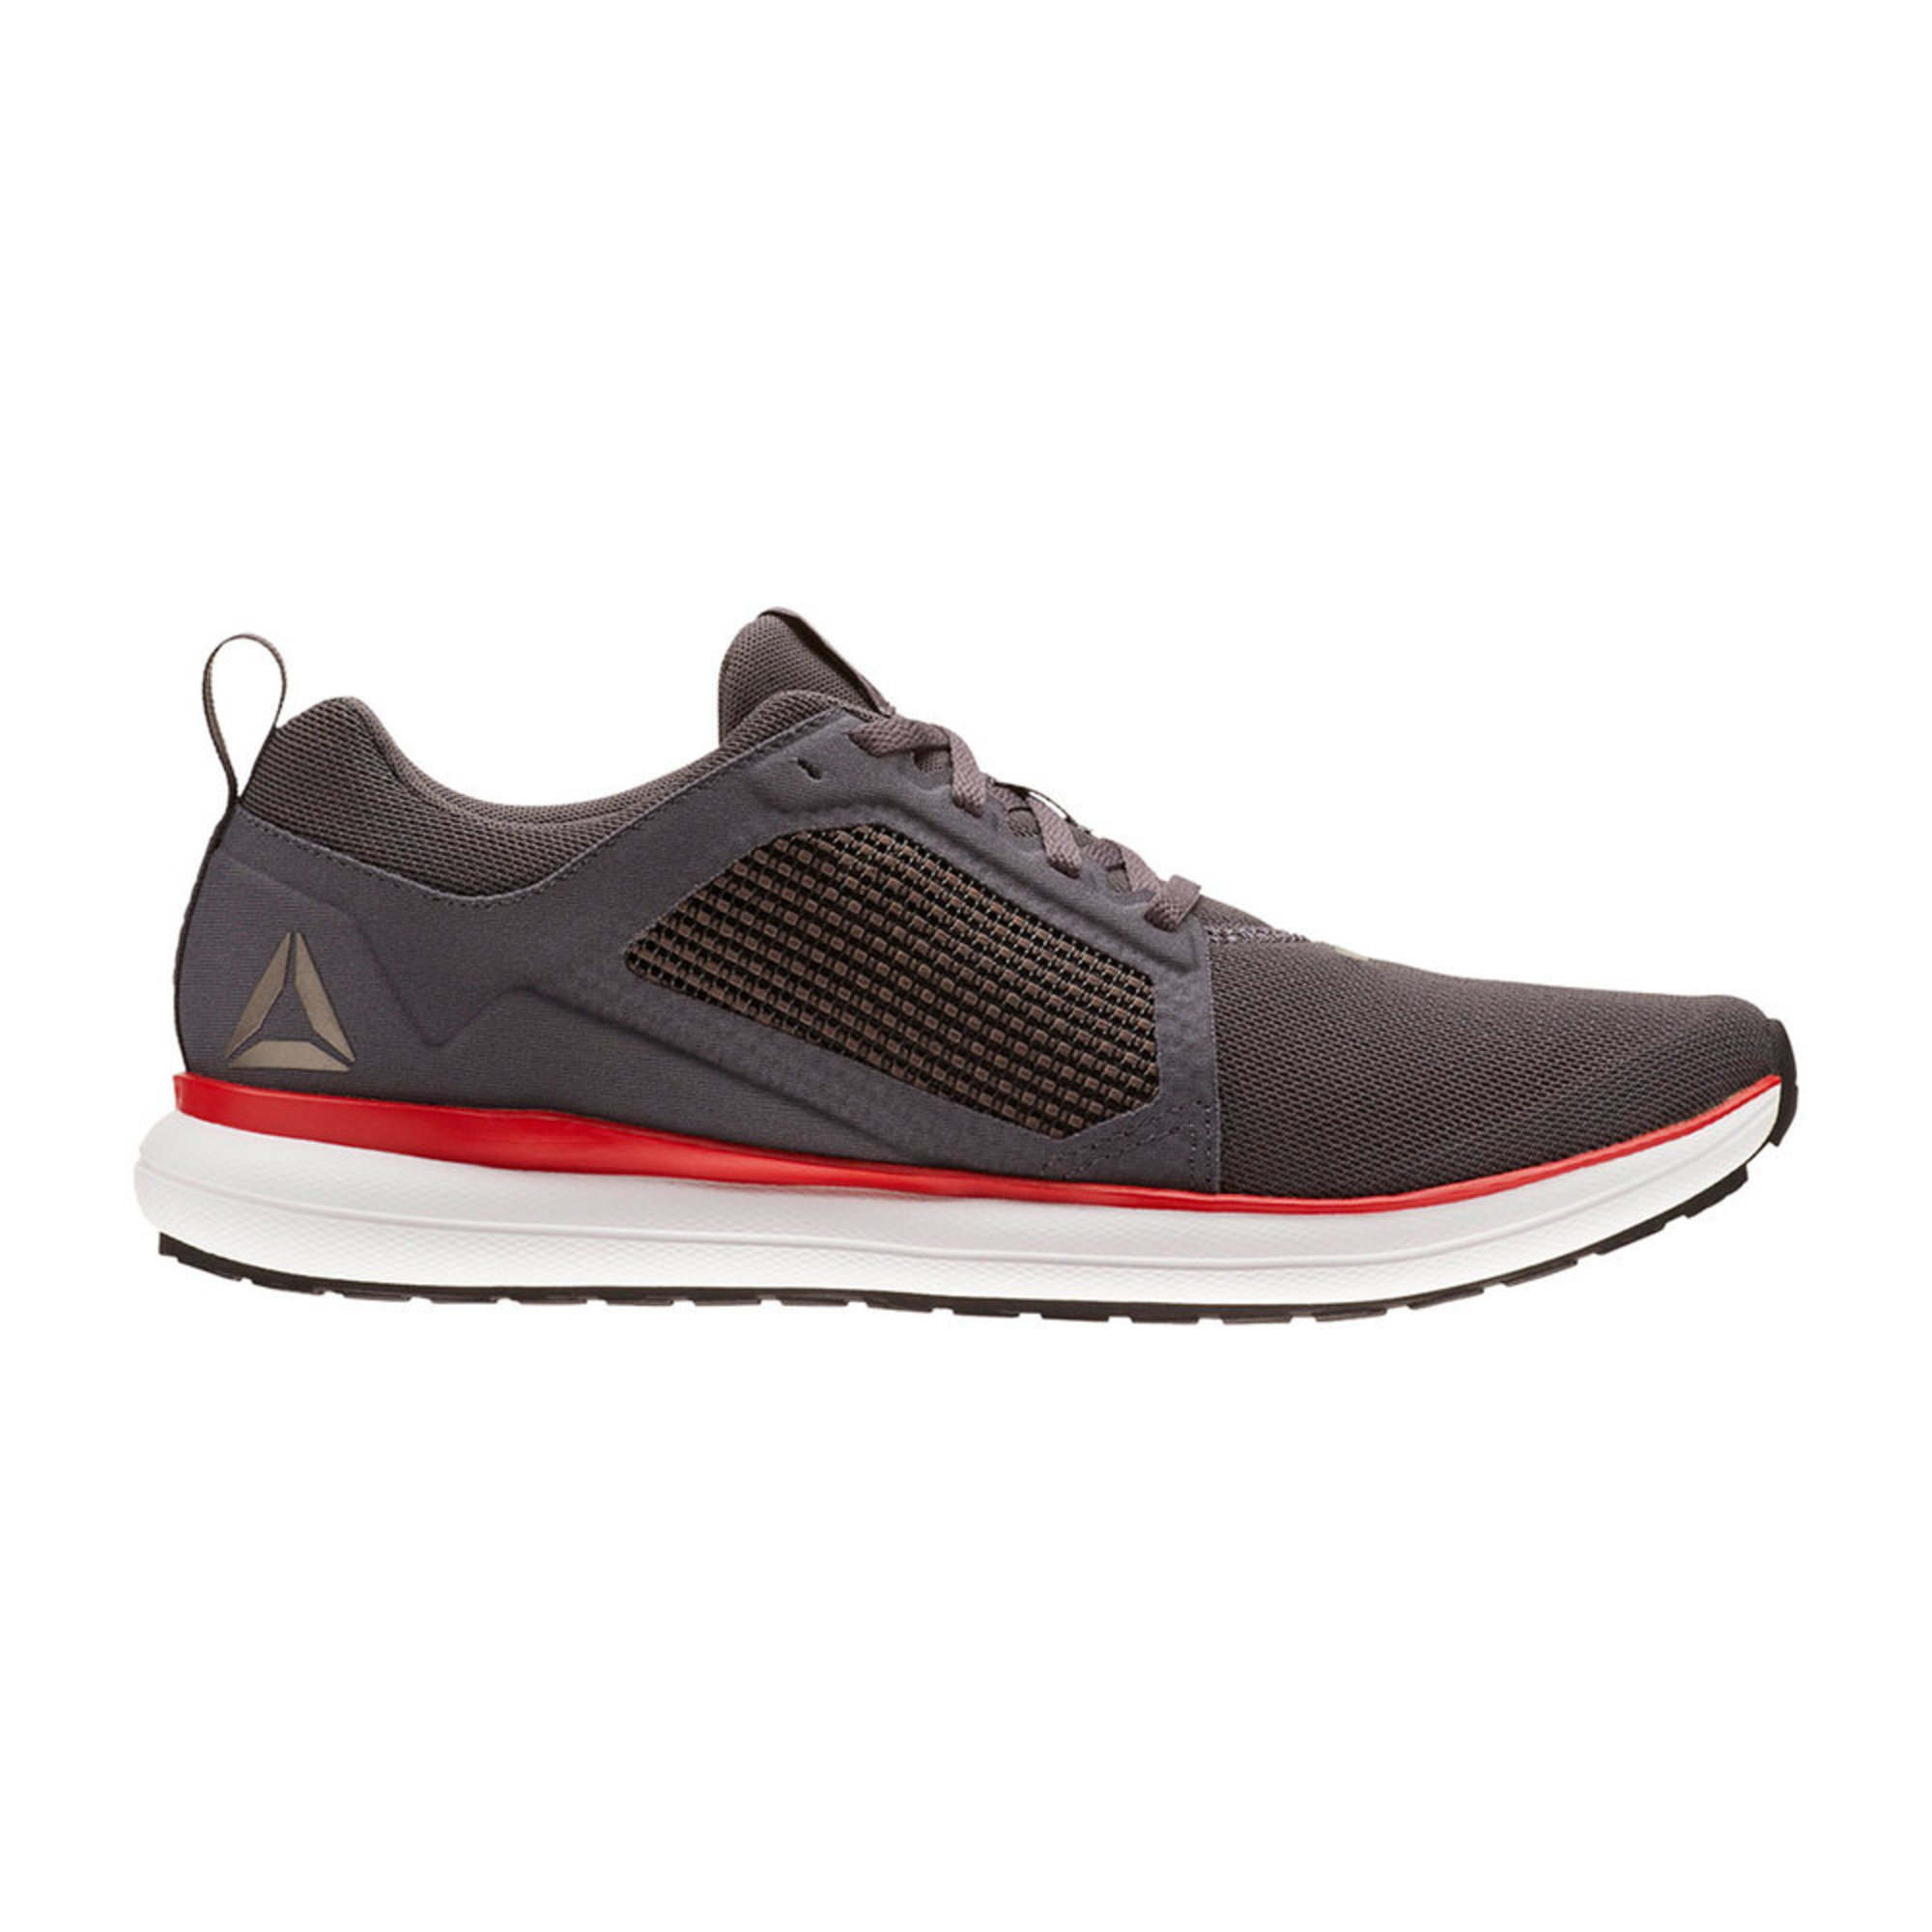 f2bc28dbf878 Reebok. Reebok Men s Driftium Ride Running Shoe